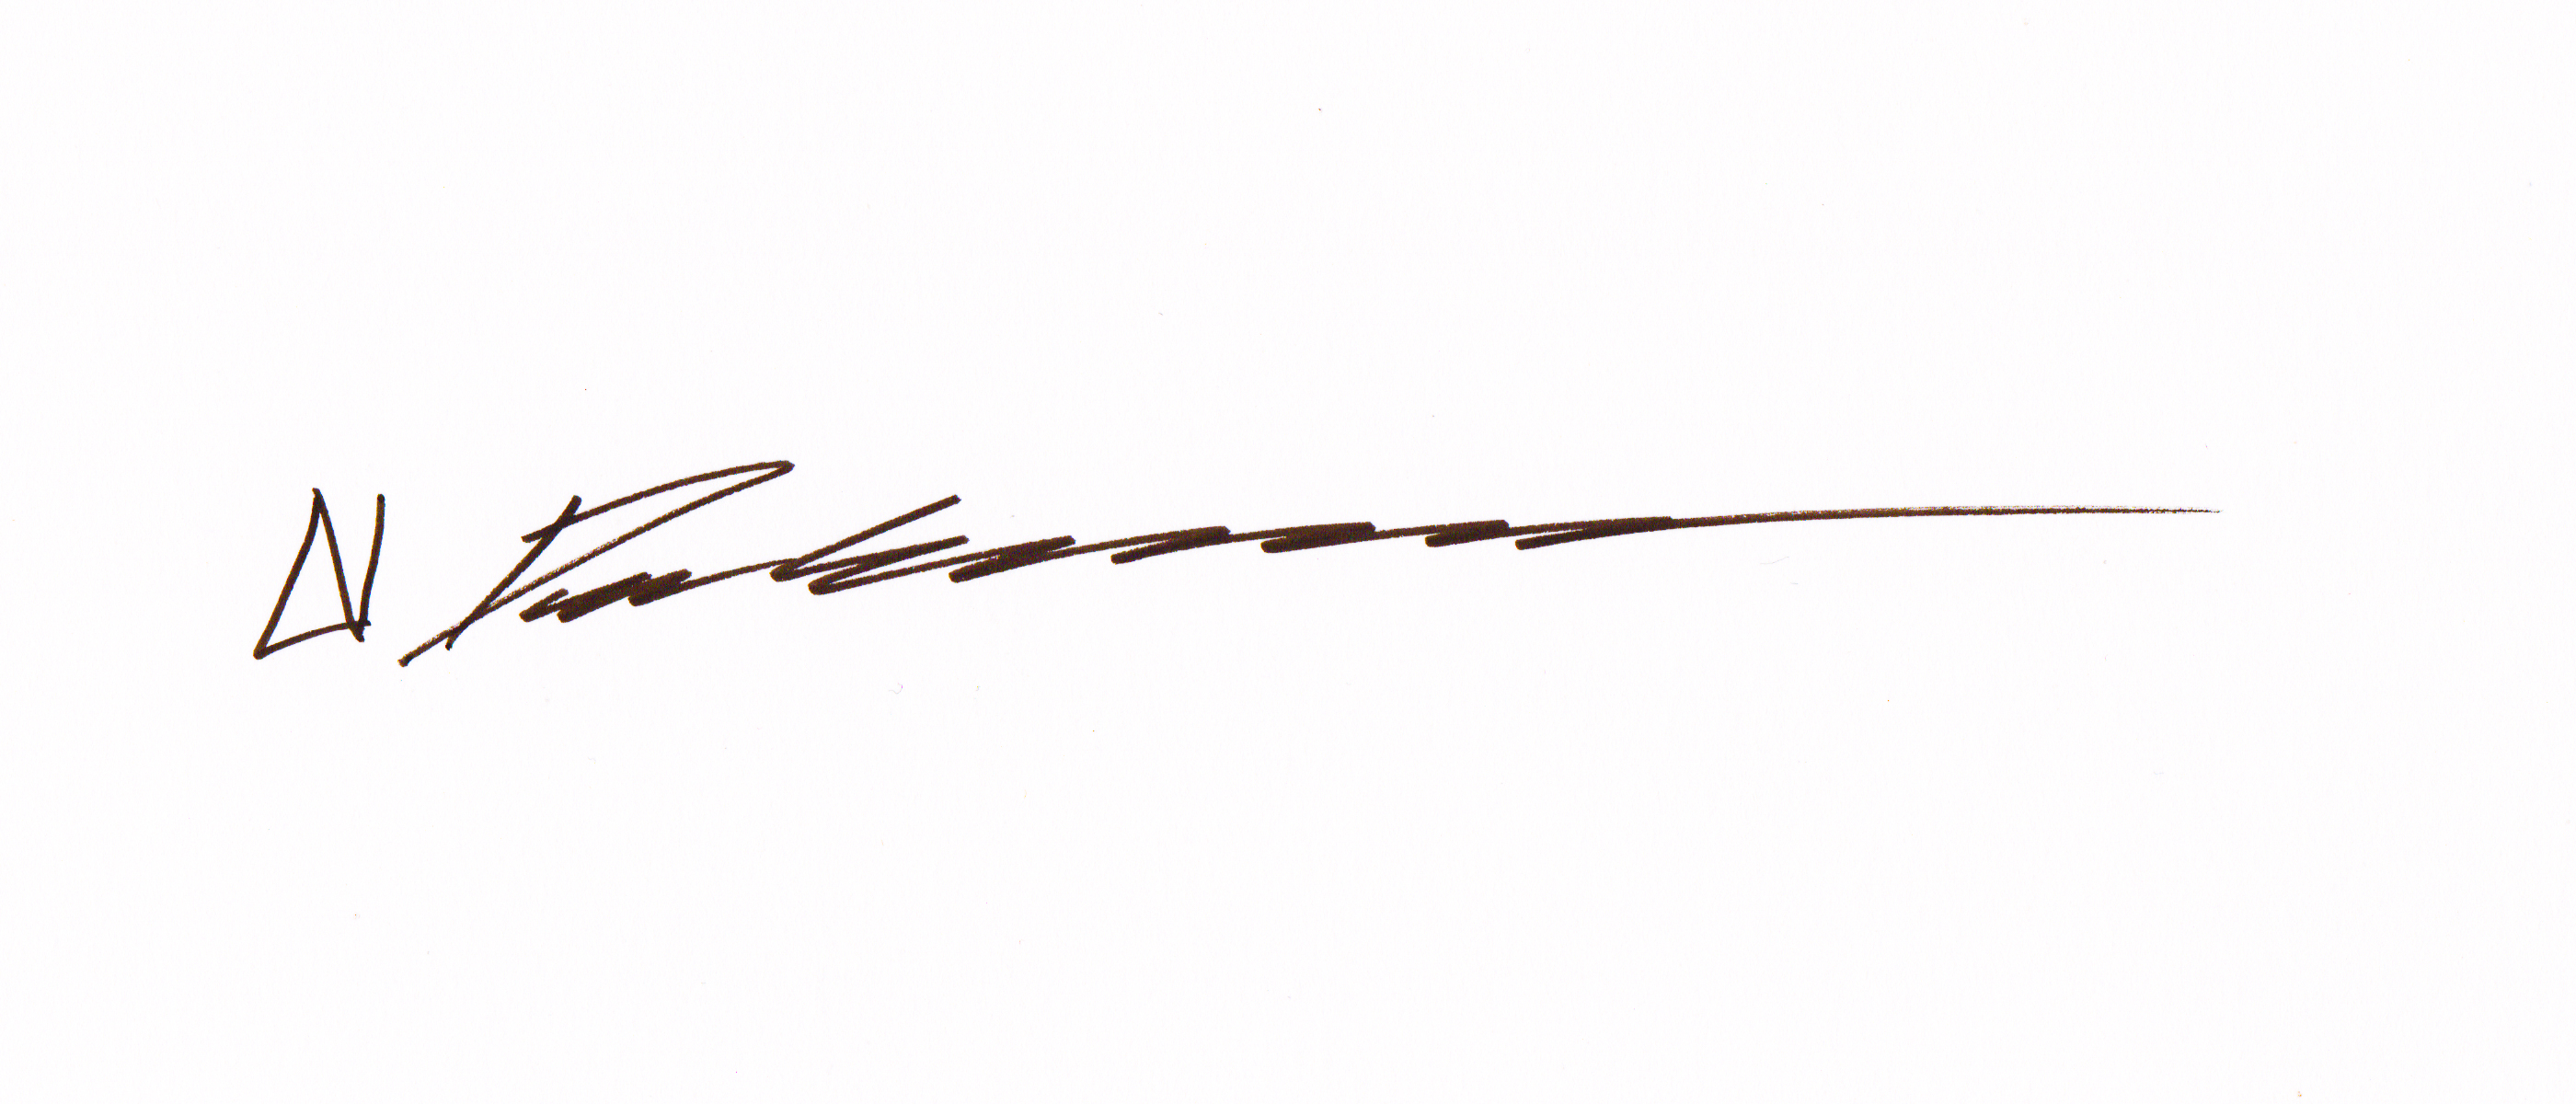 Daniel Crosier's Signature